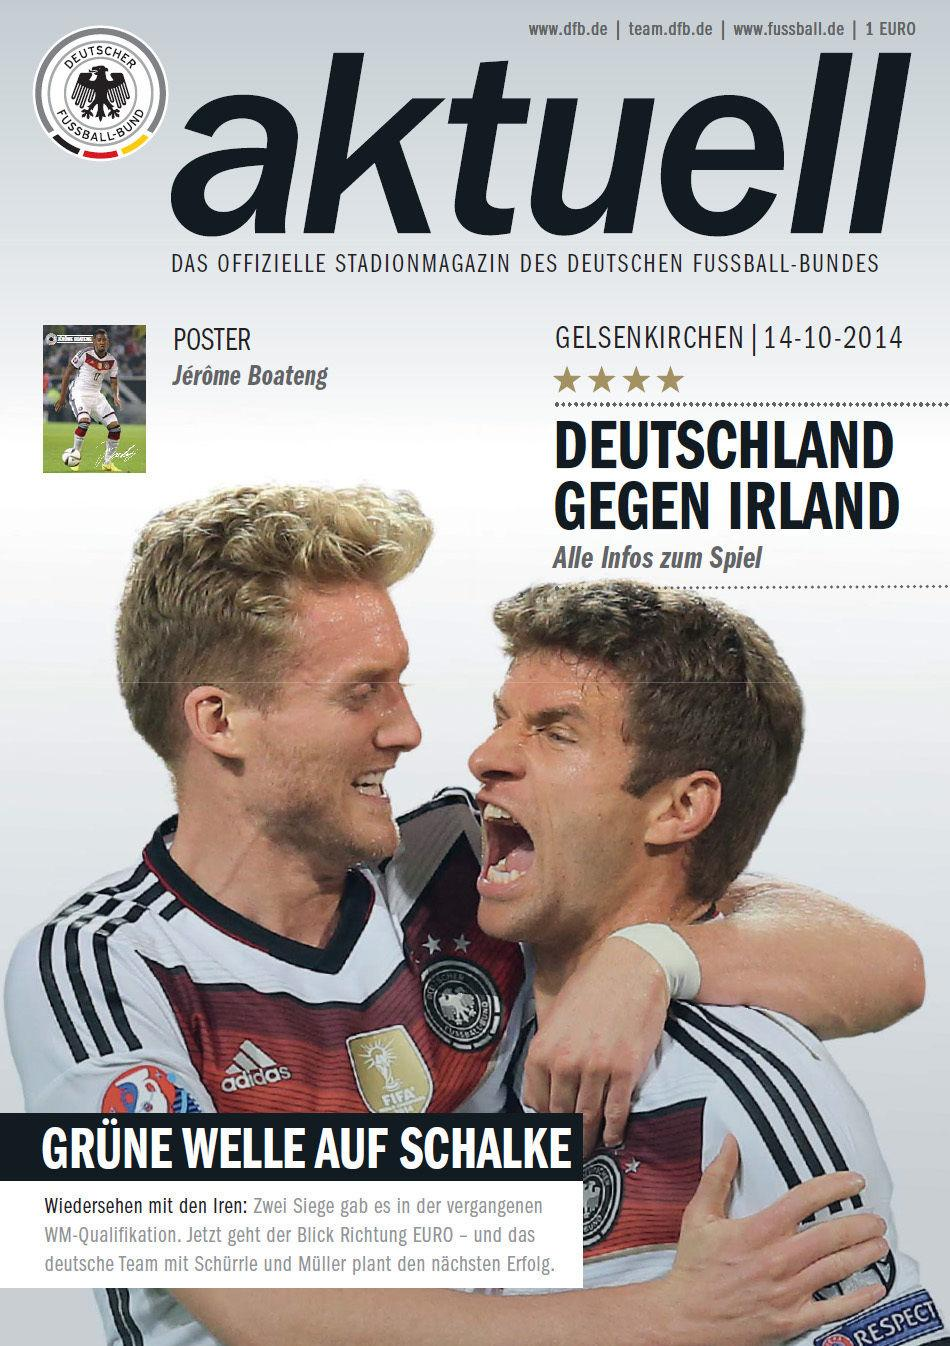 2014 - GERMANY v REPUBLIC OF IRELAND